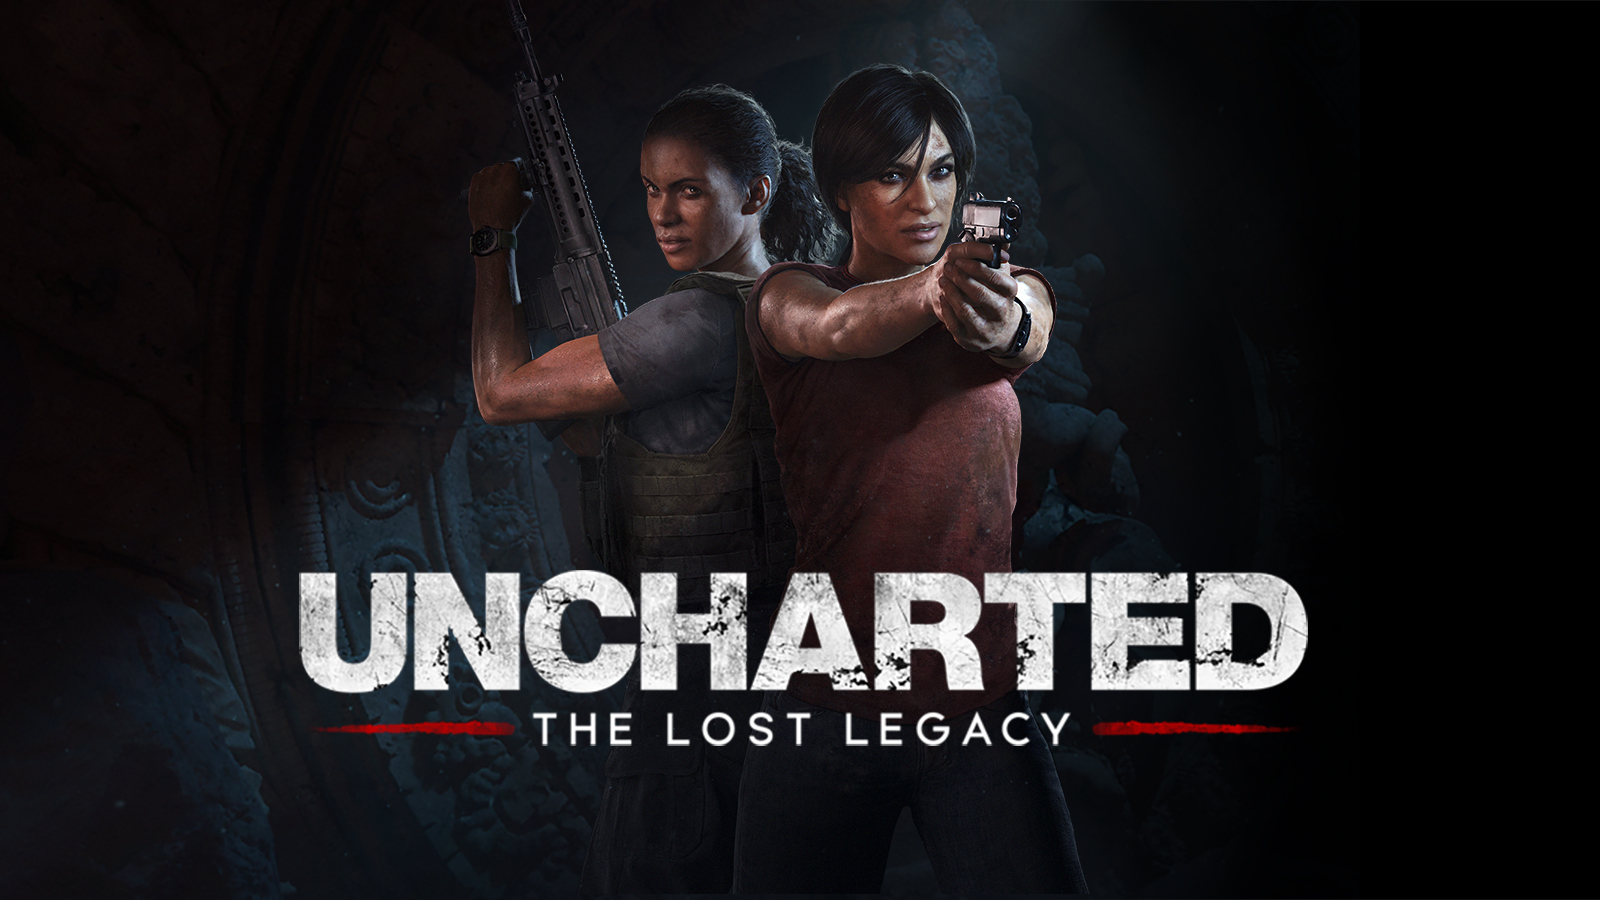 Poster de Uncharted com as personagens Chloe Frazer e Nadine Ross